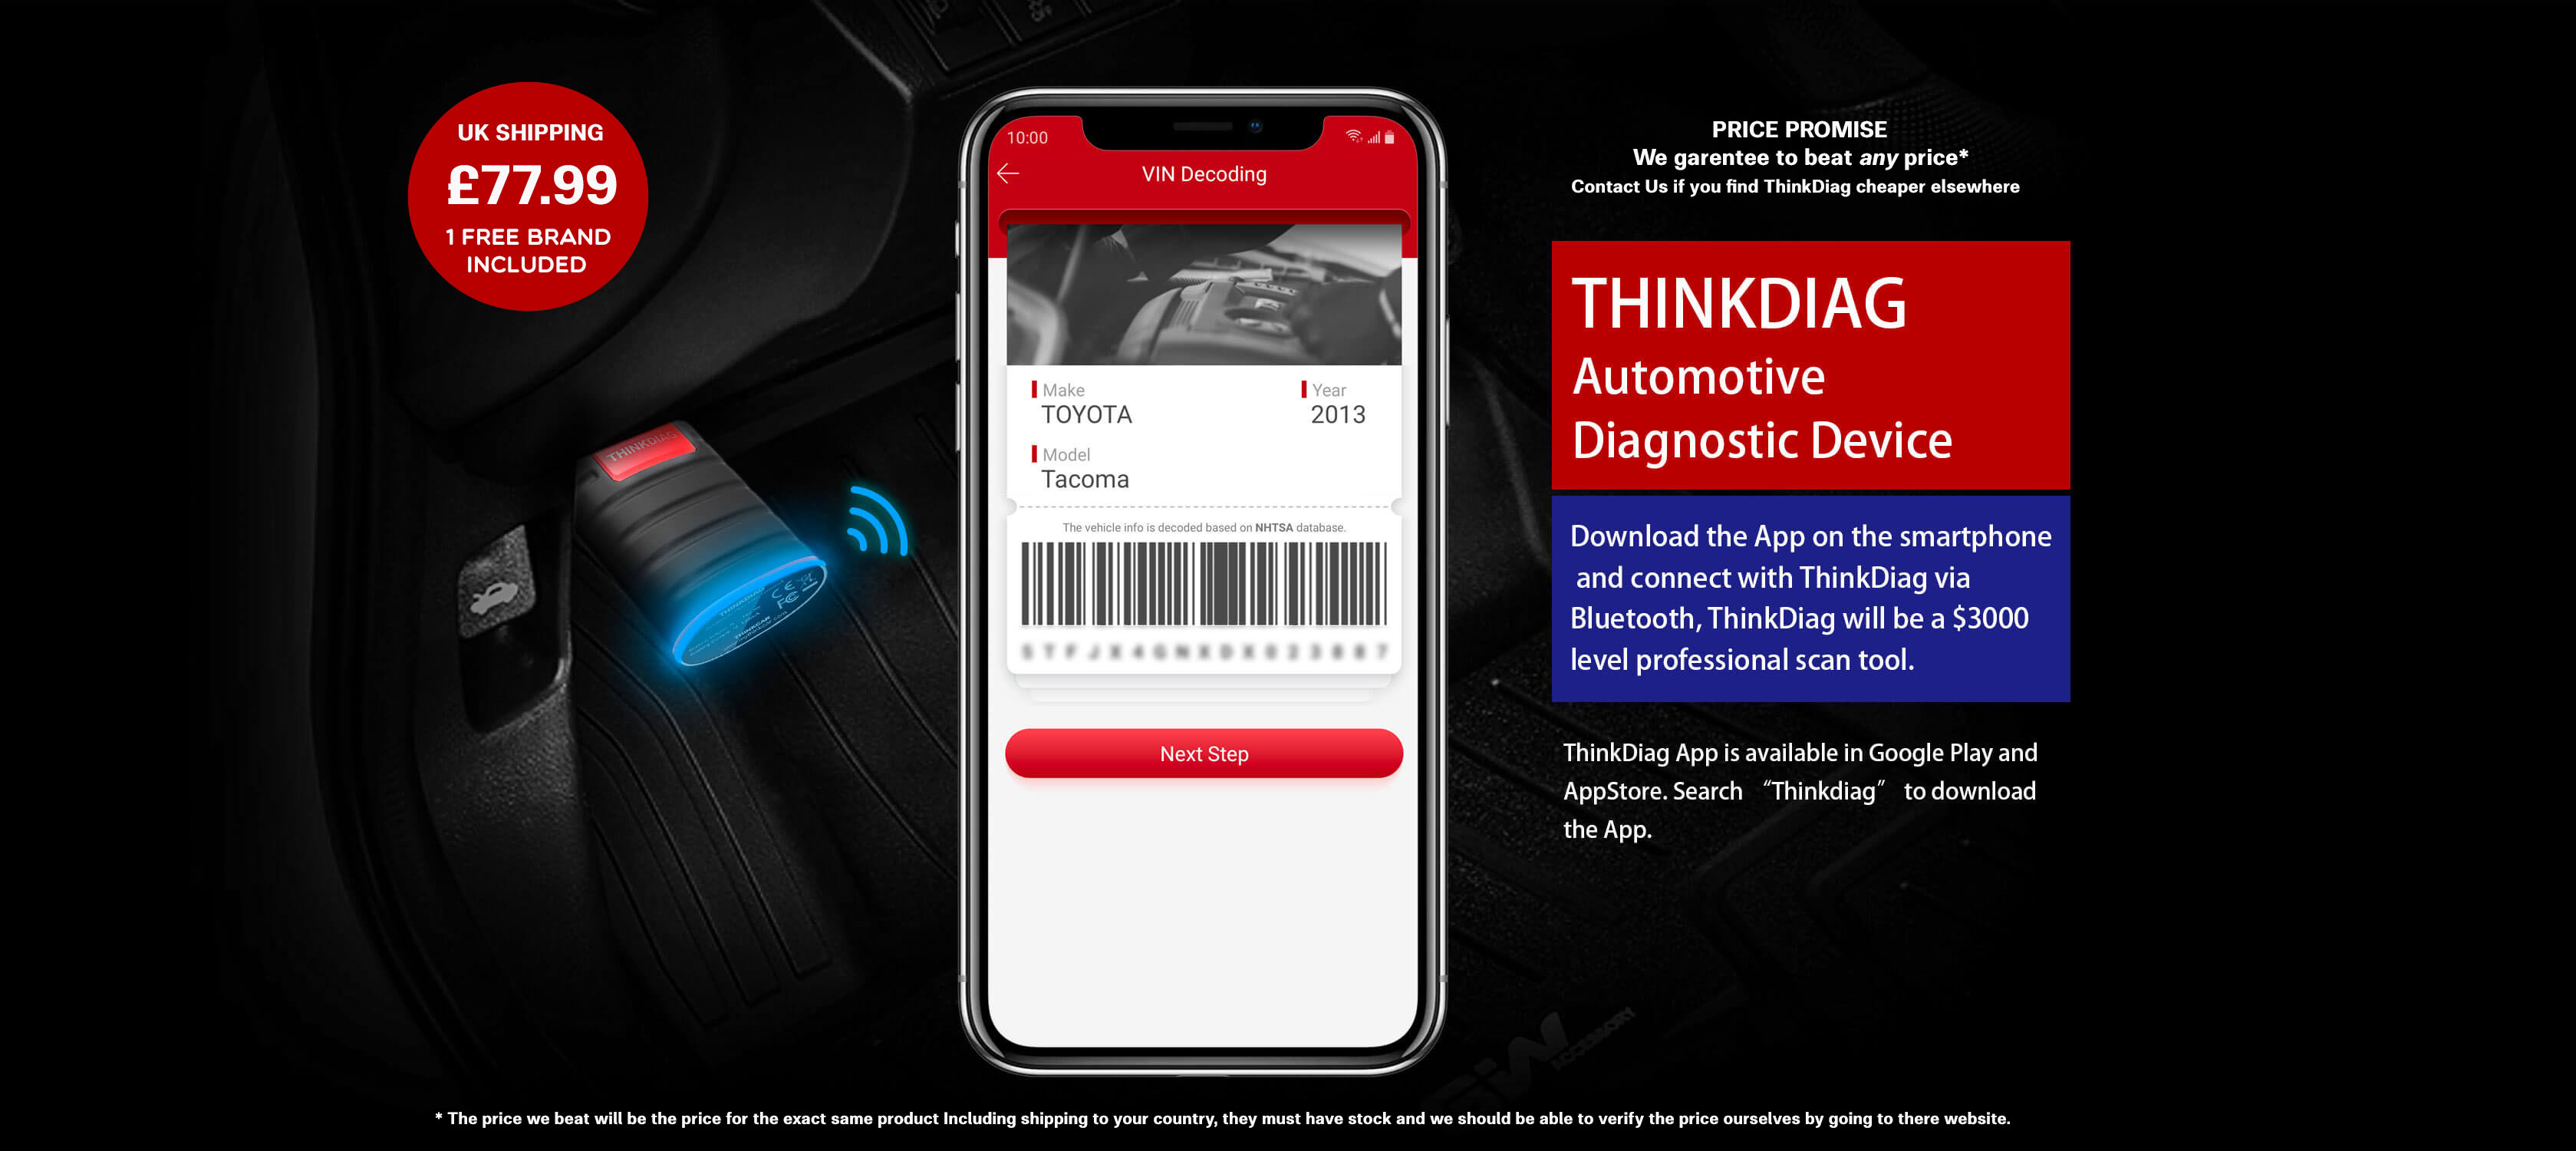 THINKDIAG Advanced Automotive Diagnostic Device. Download The App On A Tablet Or Smartphone then Connect Via Bluetooth To ThinkDiag.Thinkdiag will become a £2500 level profeshional tool that will not disapoint and could save you alot of money with the sometimes high prices of main dealers.